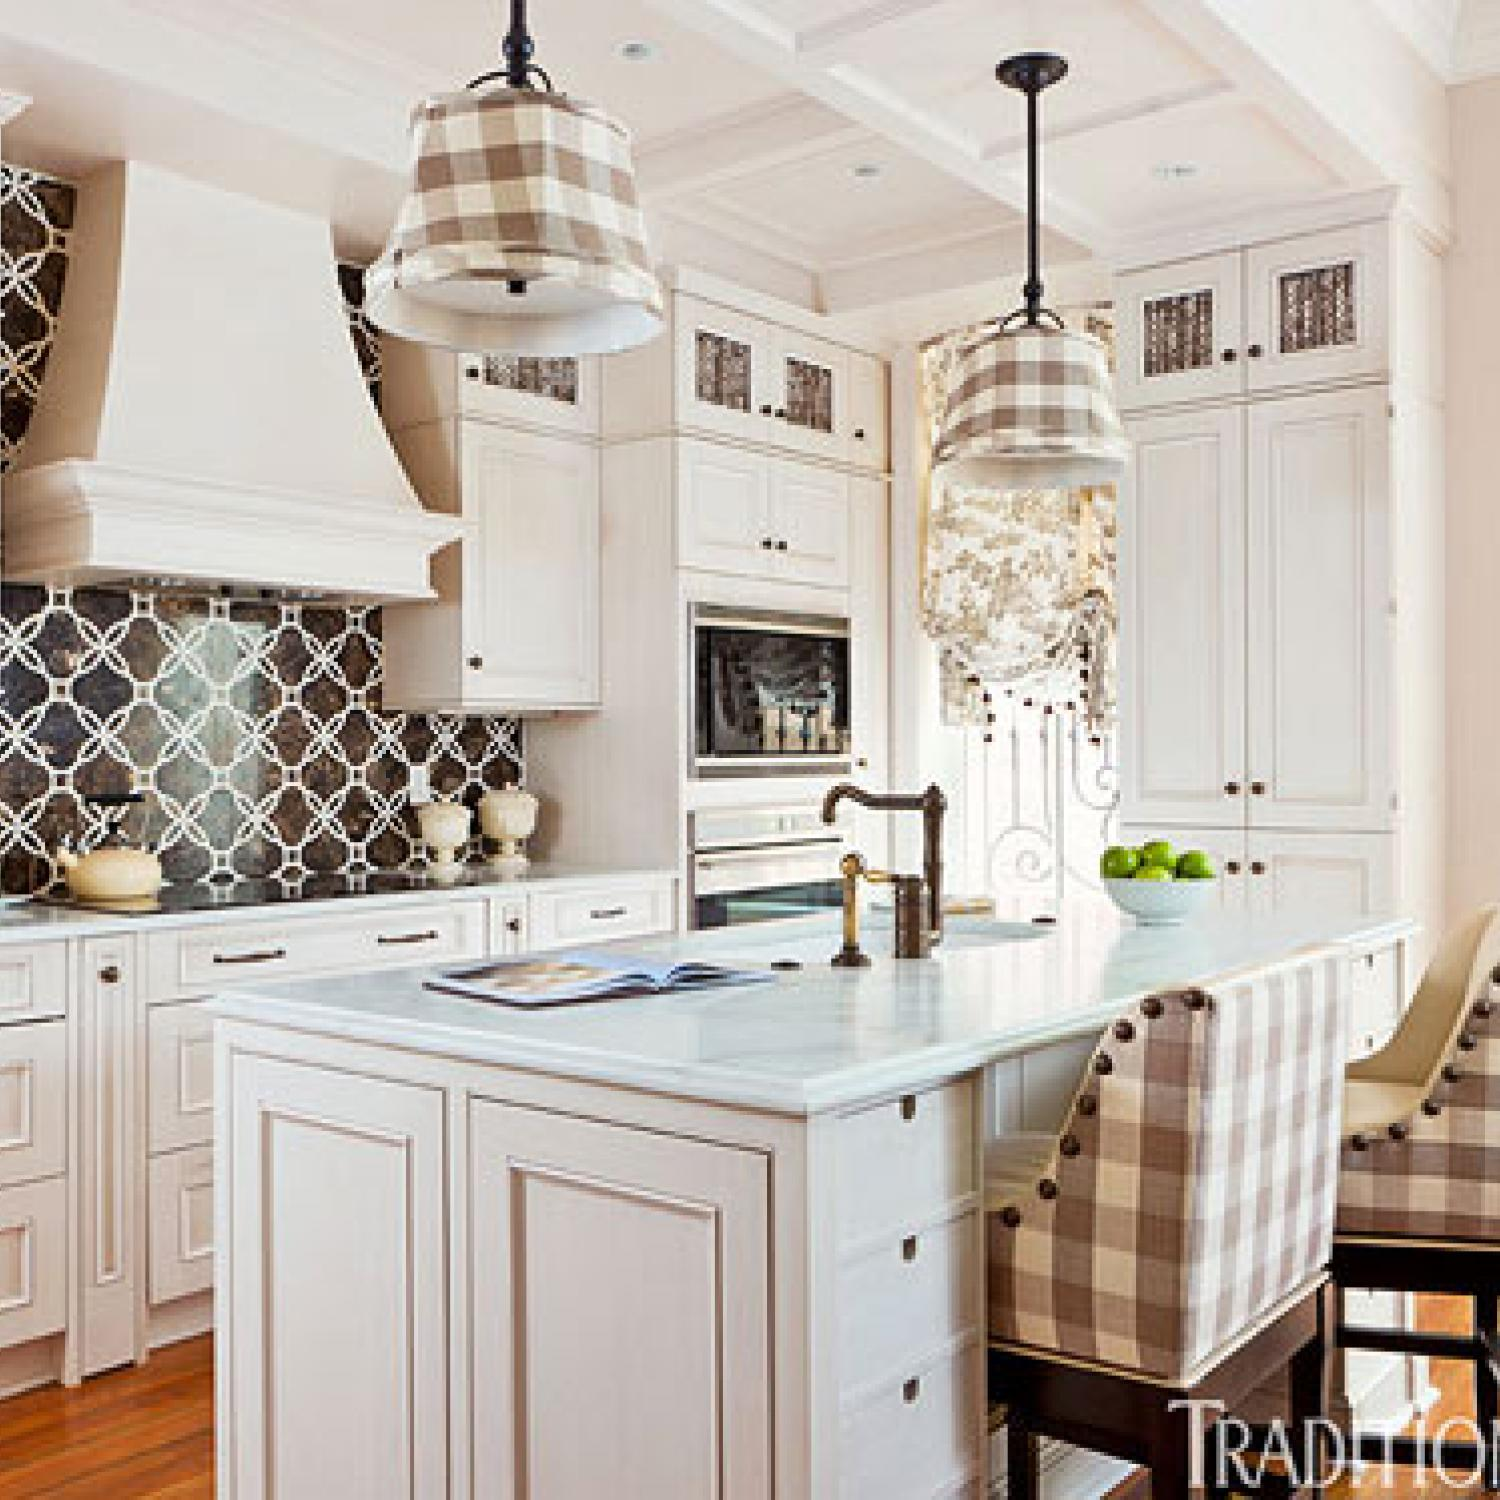 10 Steps To A Fab Kitchen